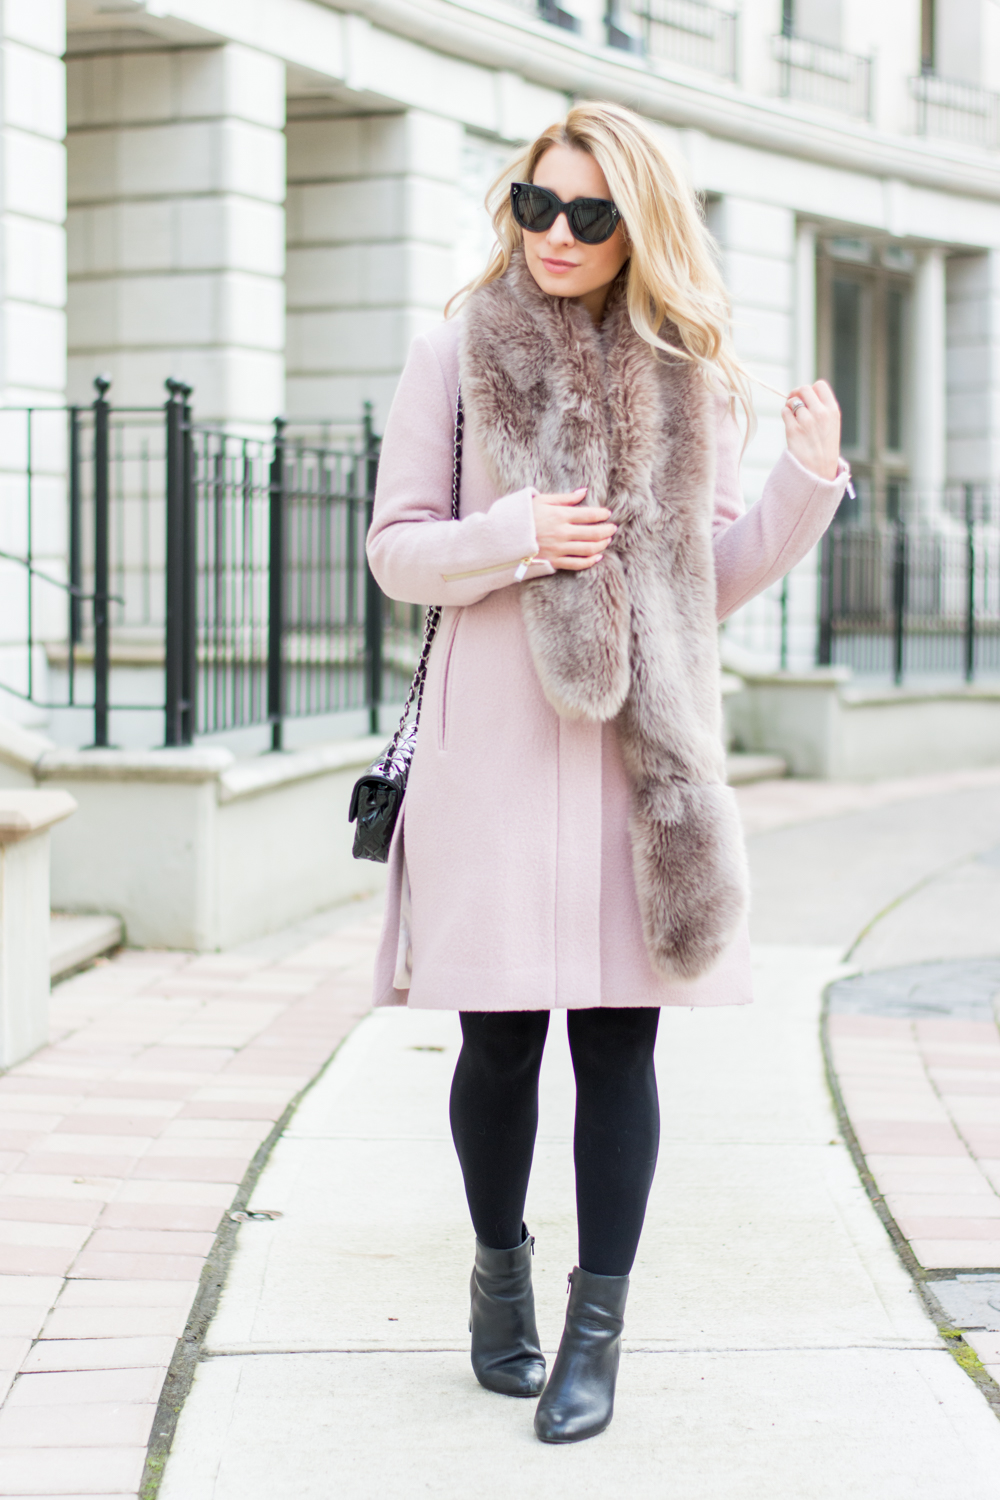 Ootd Finding The Perfect Pink Coat La Petite Noob A Toronto Based Fashion And Lifestyle Blog